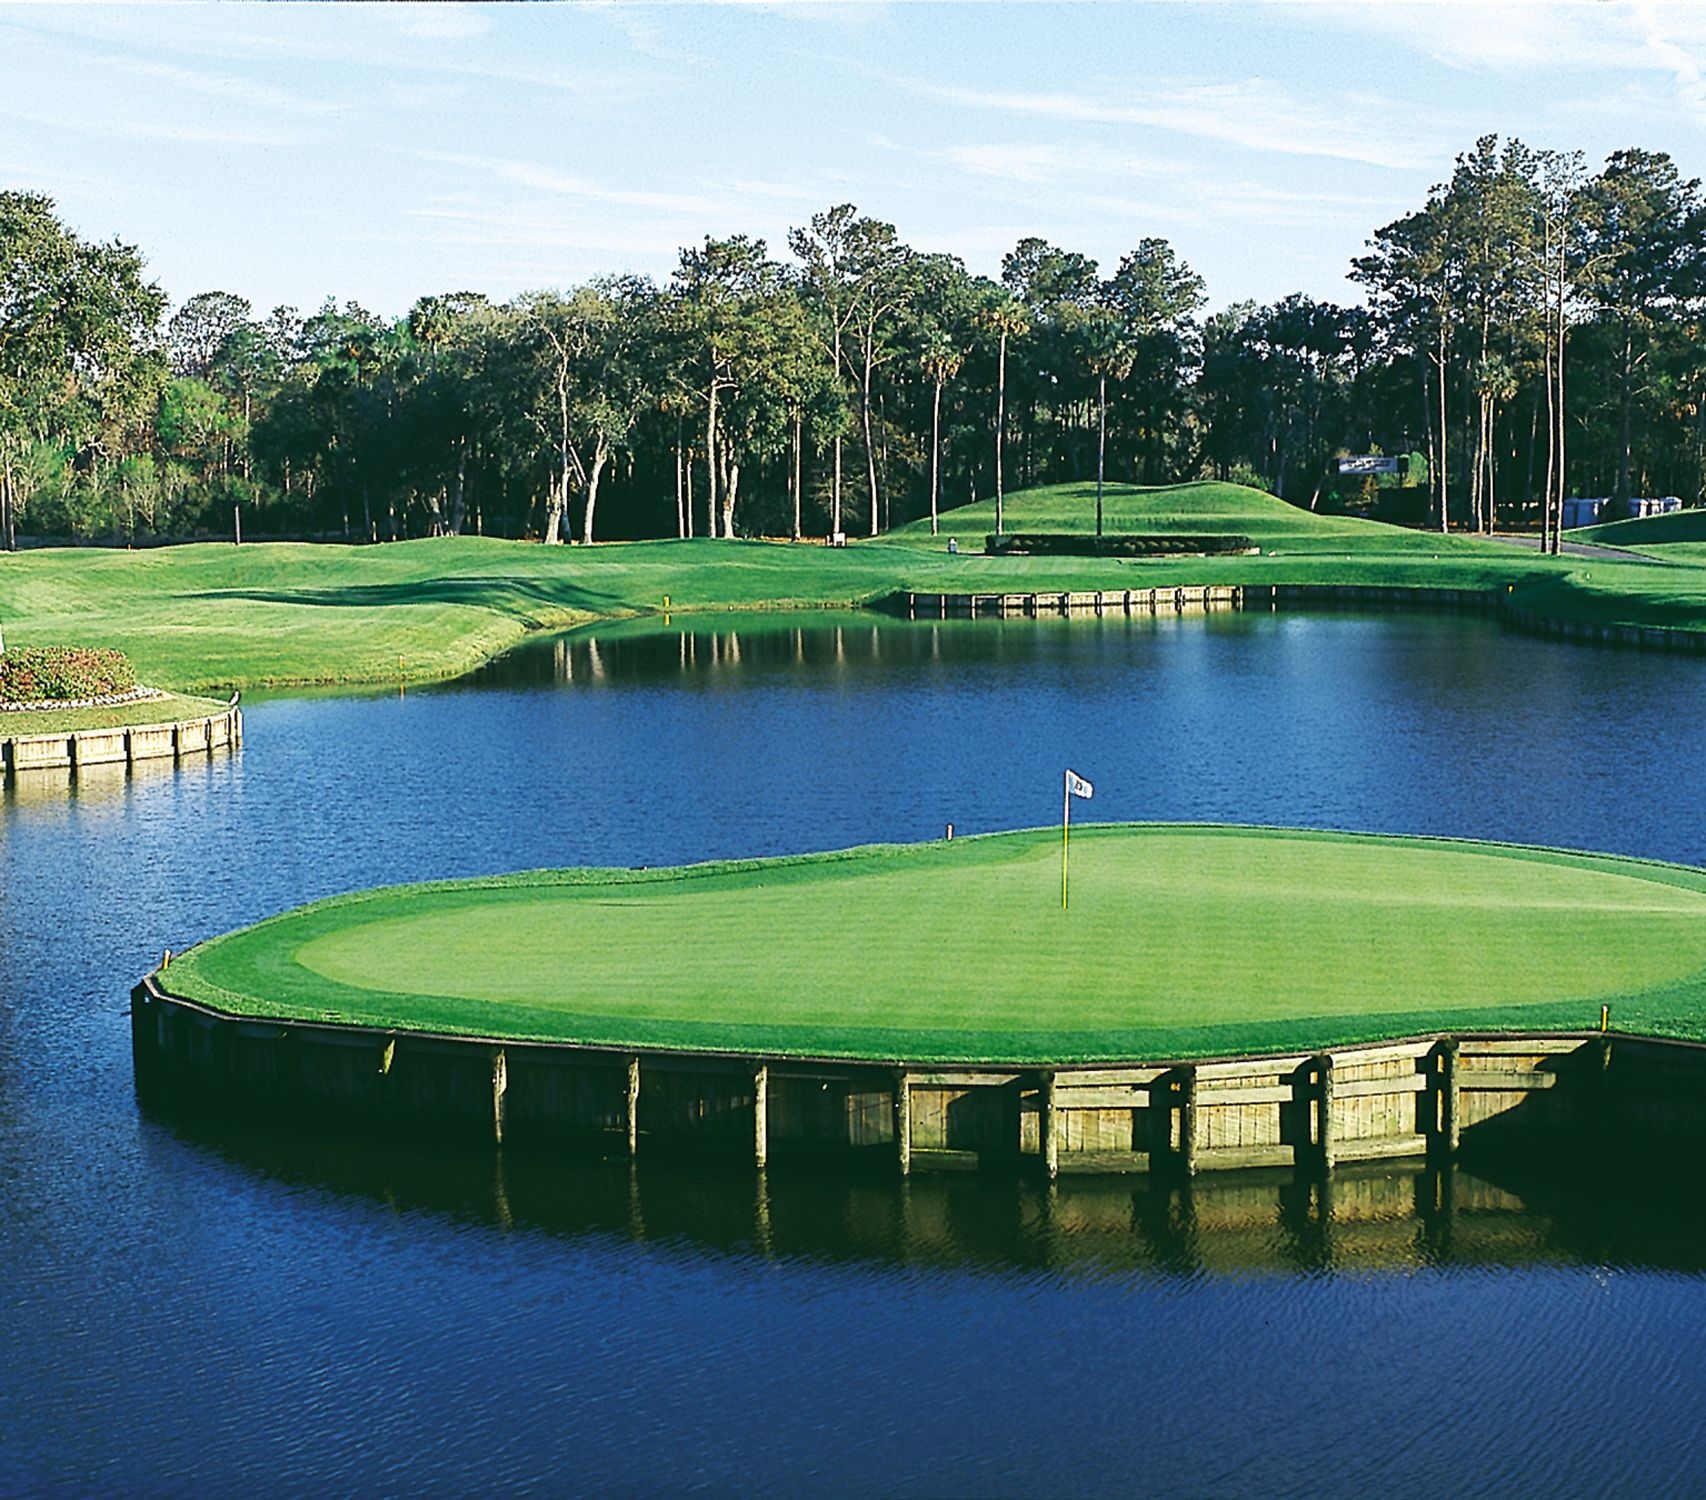 The Island Green At The 17th At Tpc Sawgrass Golf Courses Golf Course Photography Best Golf Courses